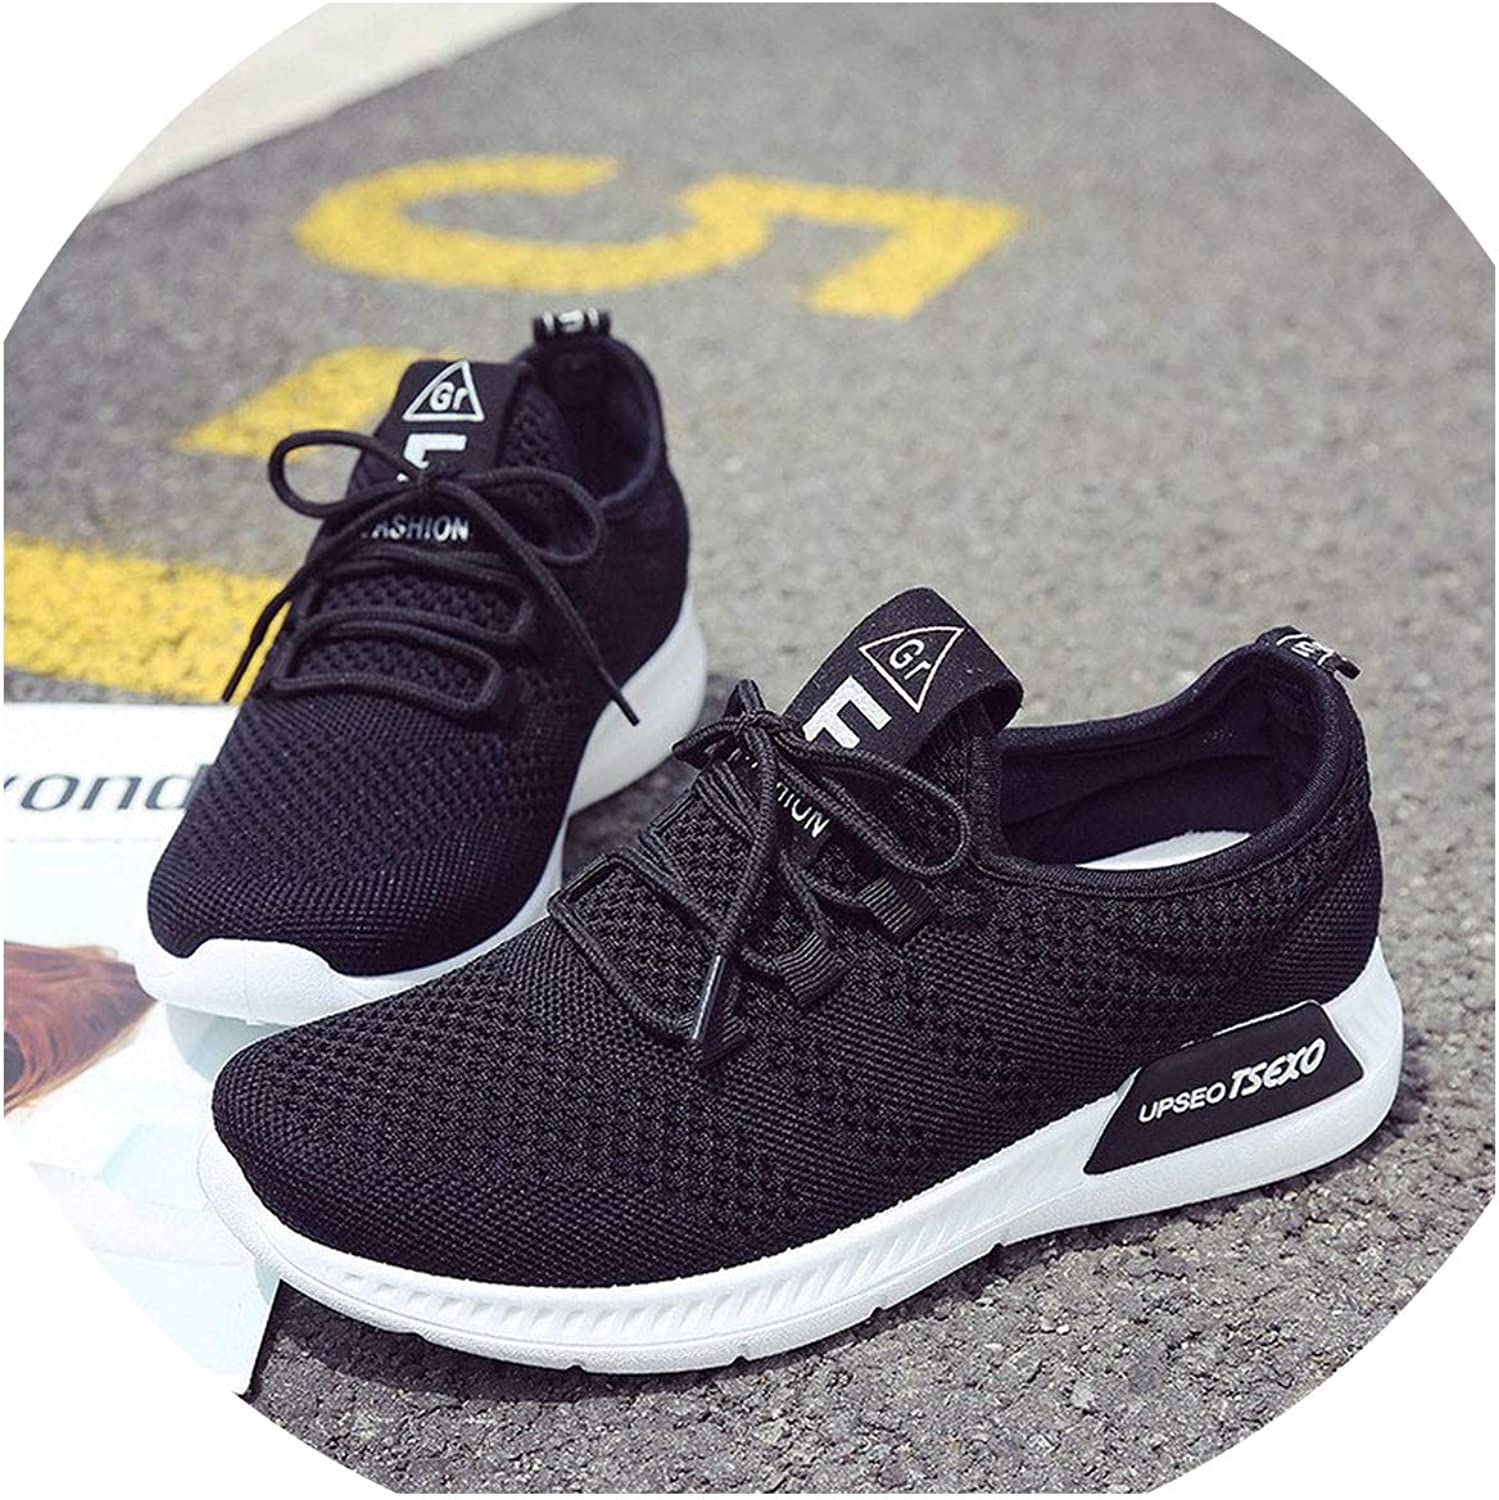 Glad You Came Sport shoes Women 2019 Running shoes Women Sneakers Sport Breathable Free Run Sneakers Men Women for Girls